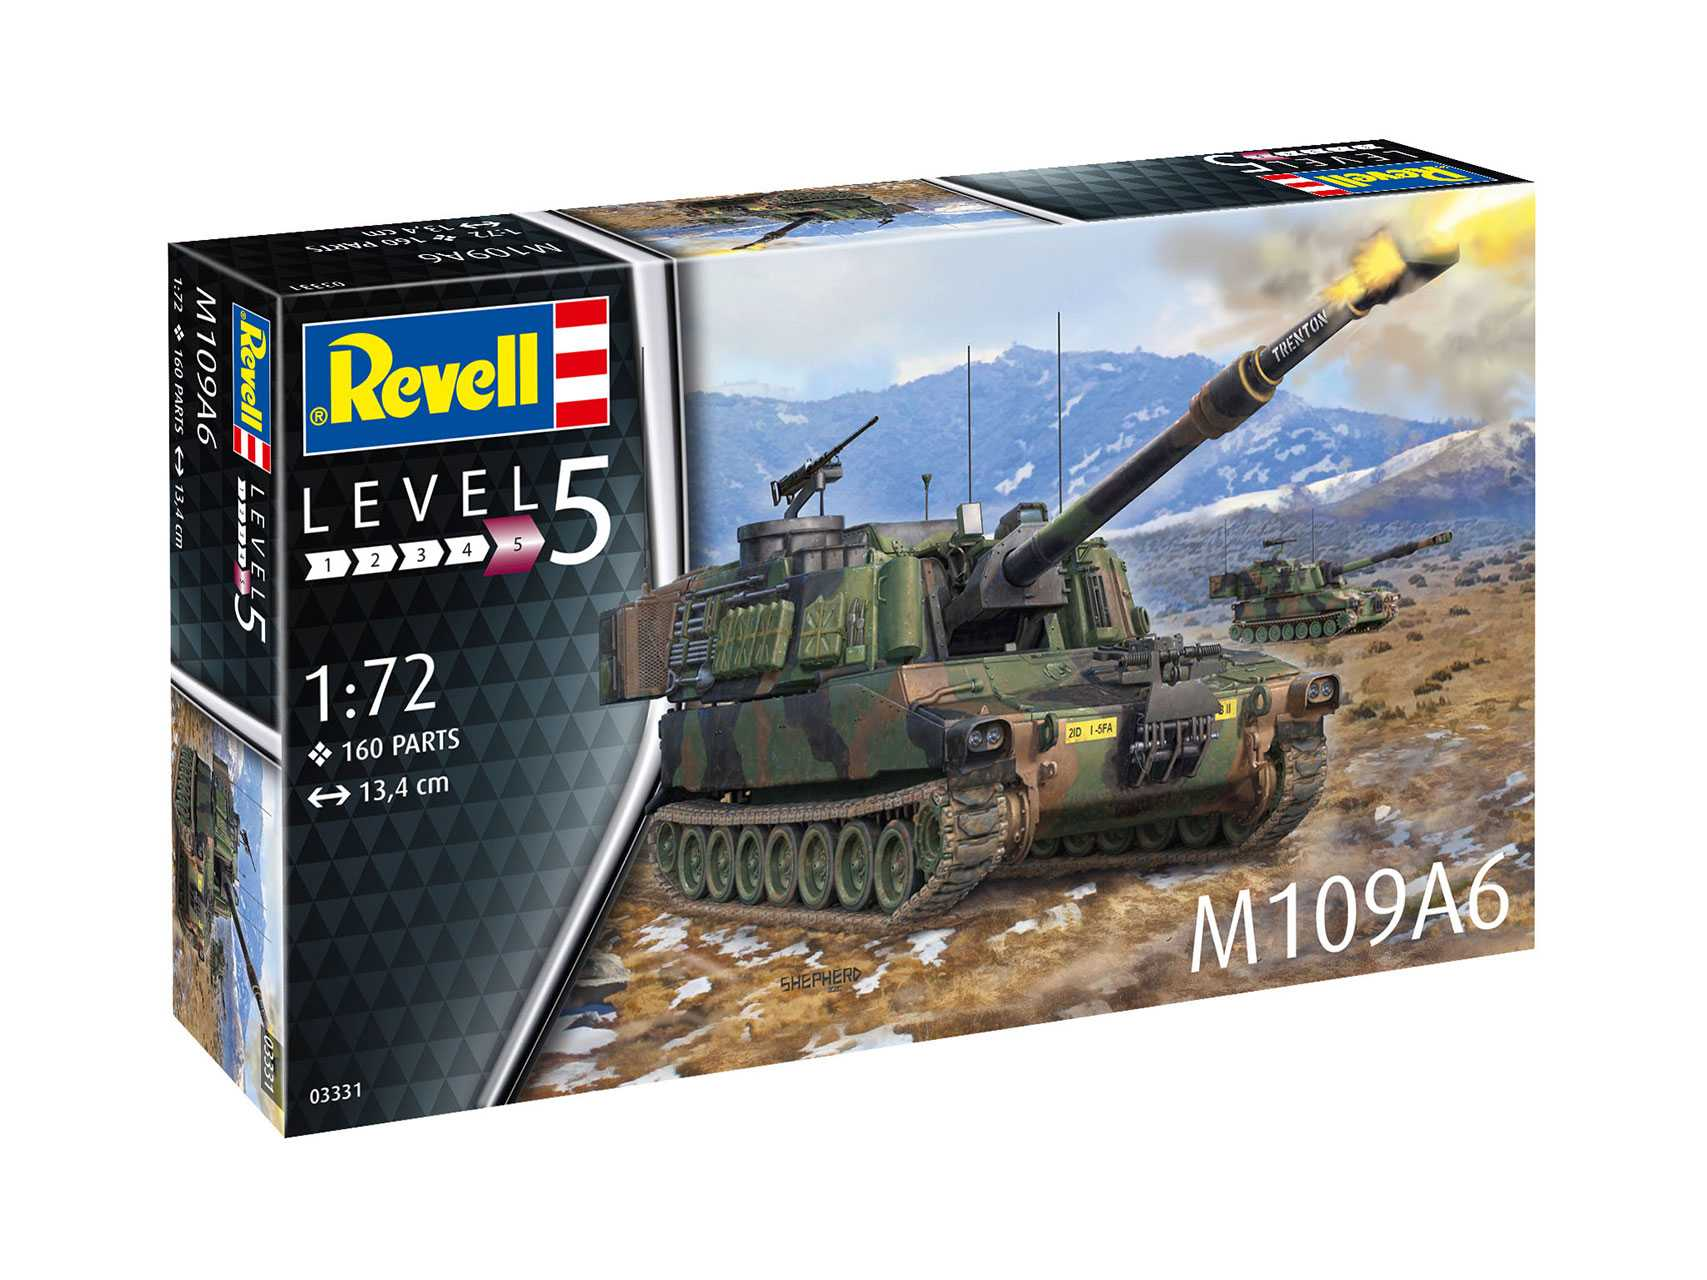 1:72 U.S. Self-Propelled Howitzer M109A6 Paladin